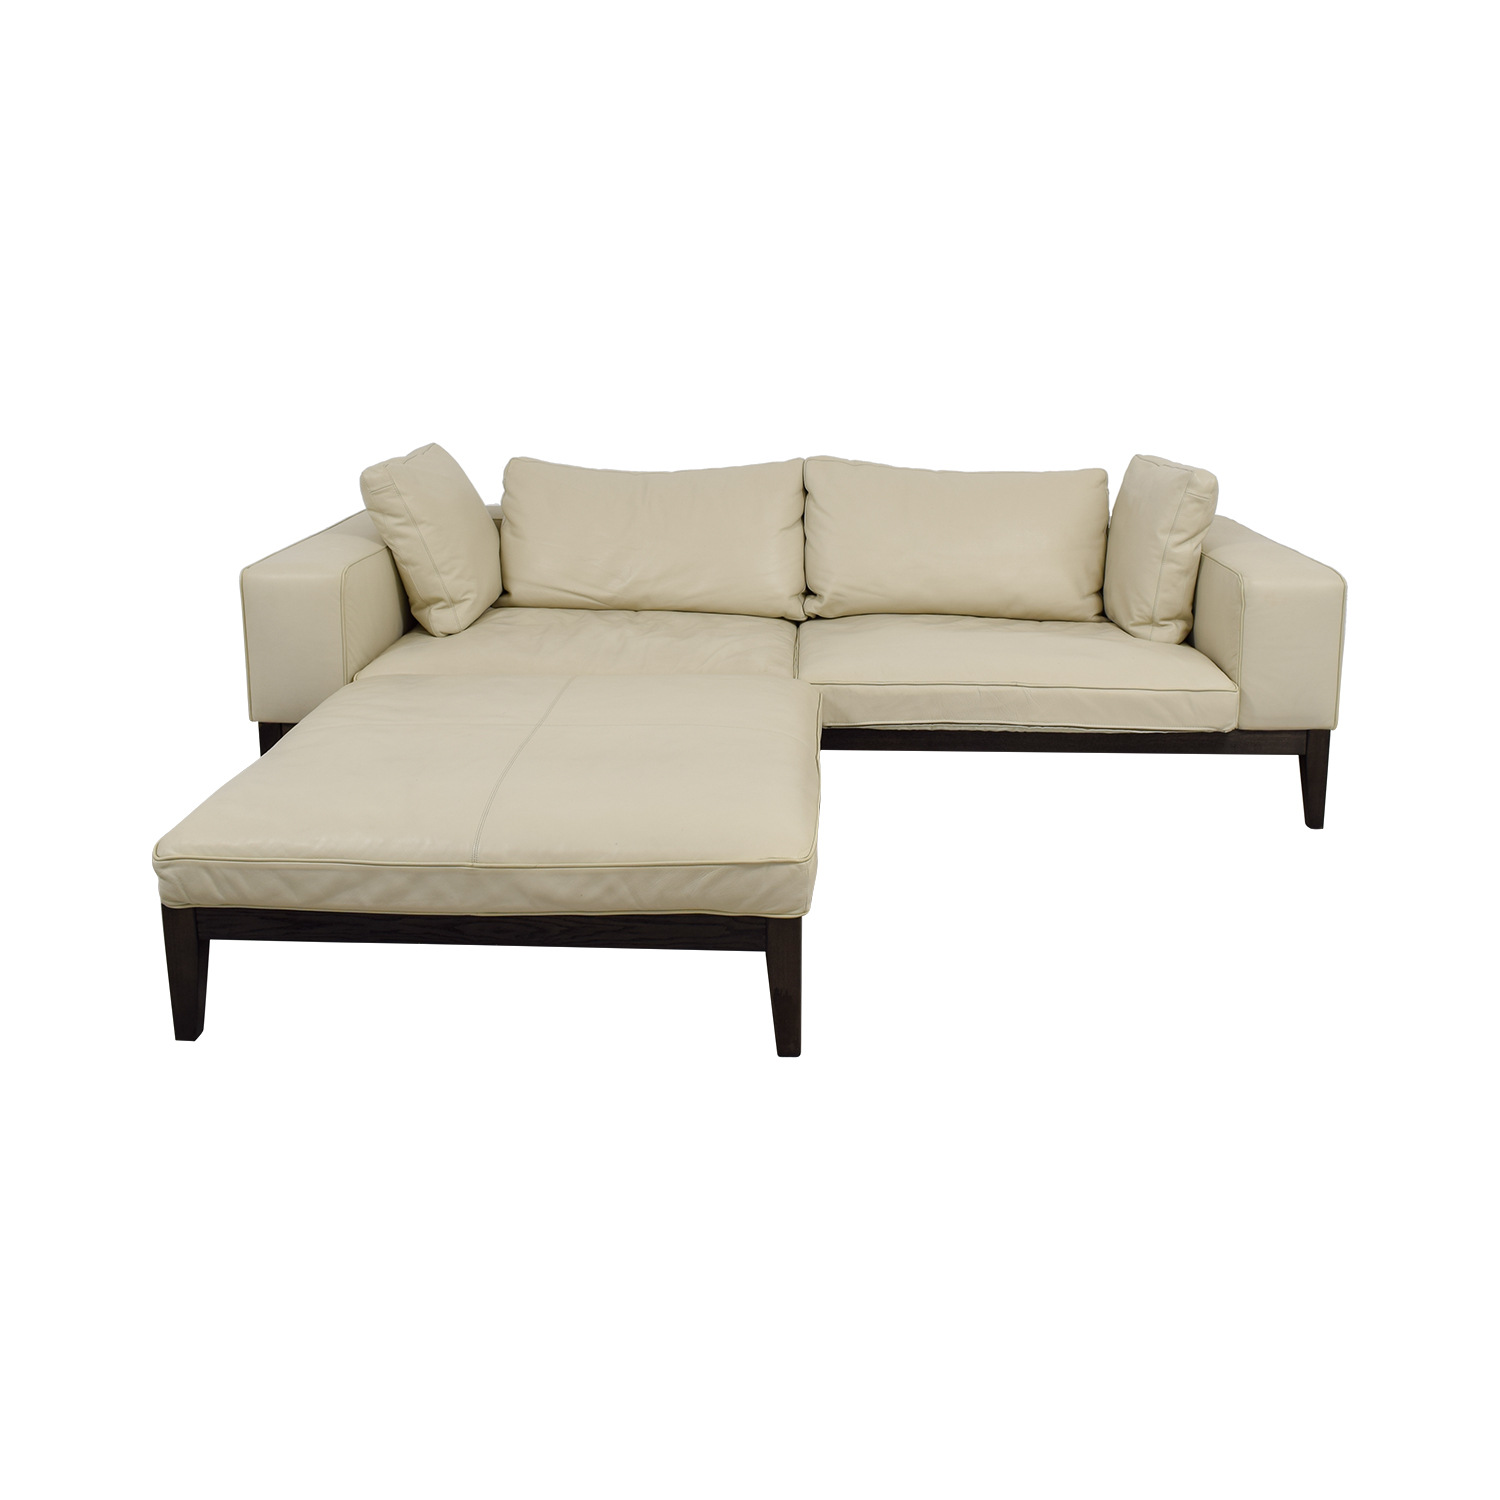 Italian Leather Furniture Nyc: Tree Tree Contemporary Italian Off White Leather Couch With Large Chaise Ottoman / Sofas